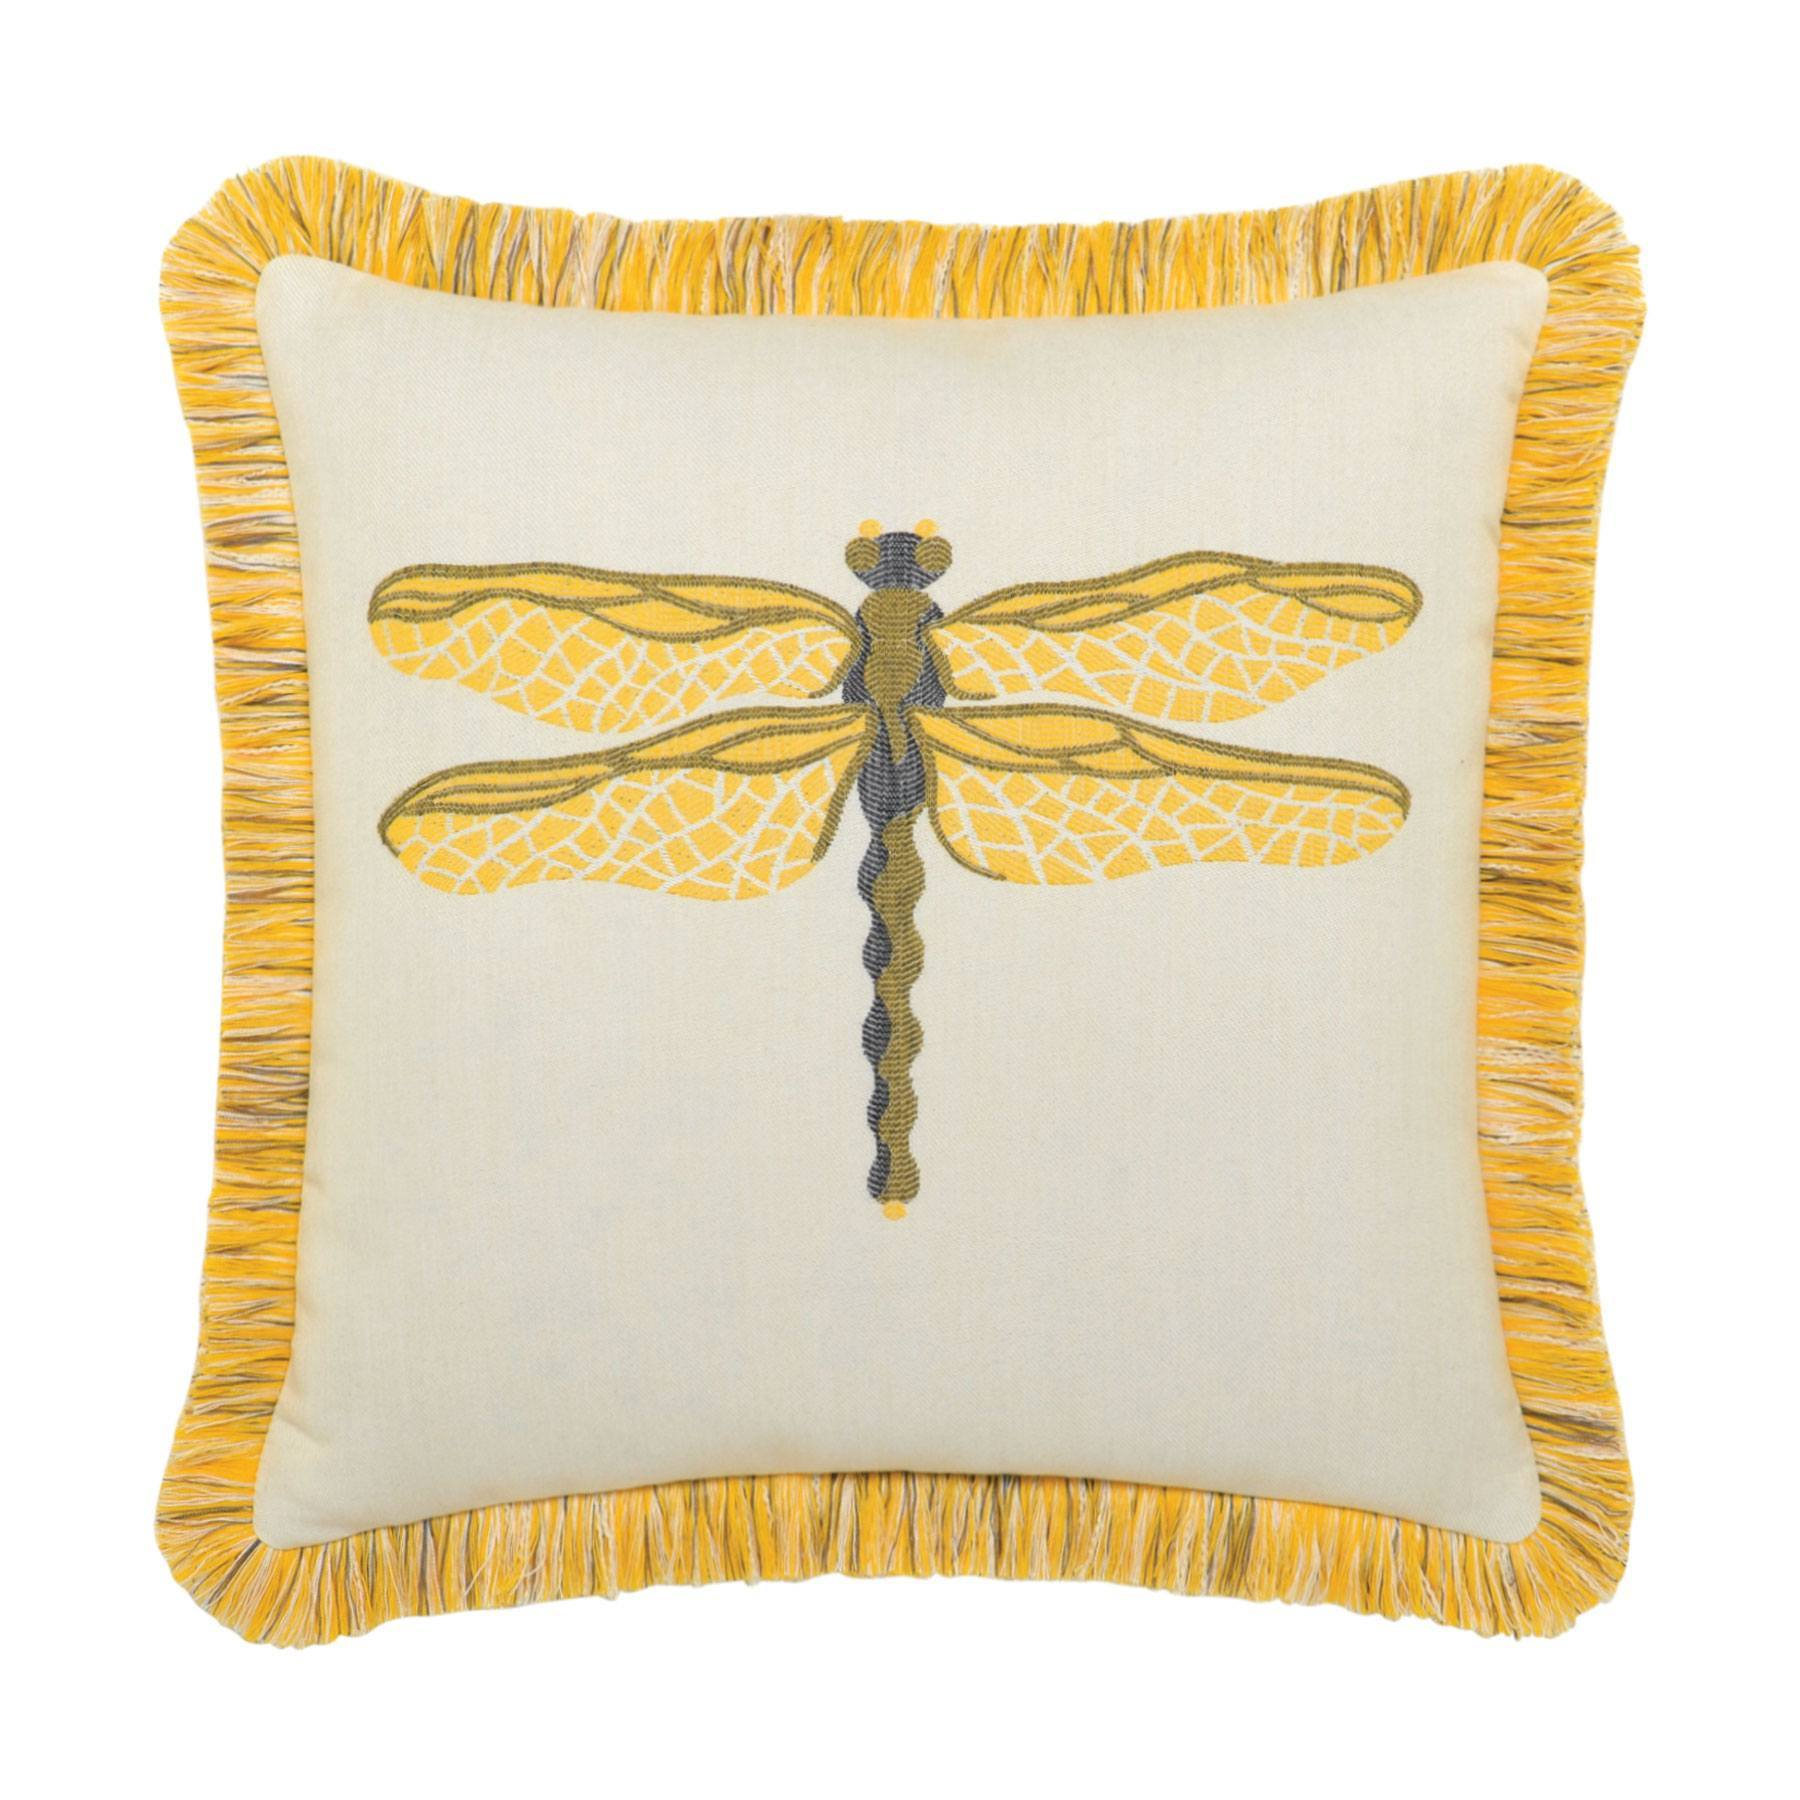 Elaine Smith Fringed Dragonfly Sun Throw Pillow Leisure